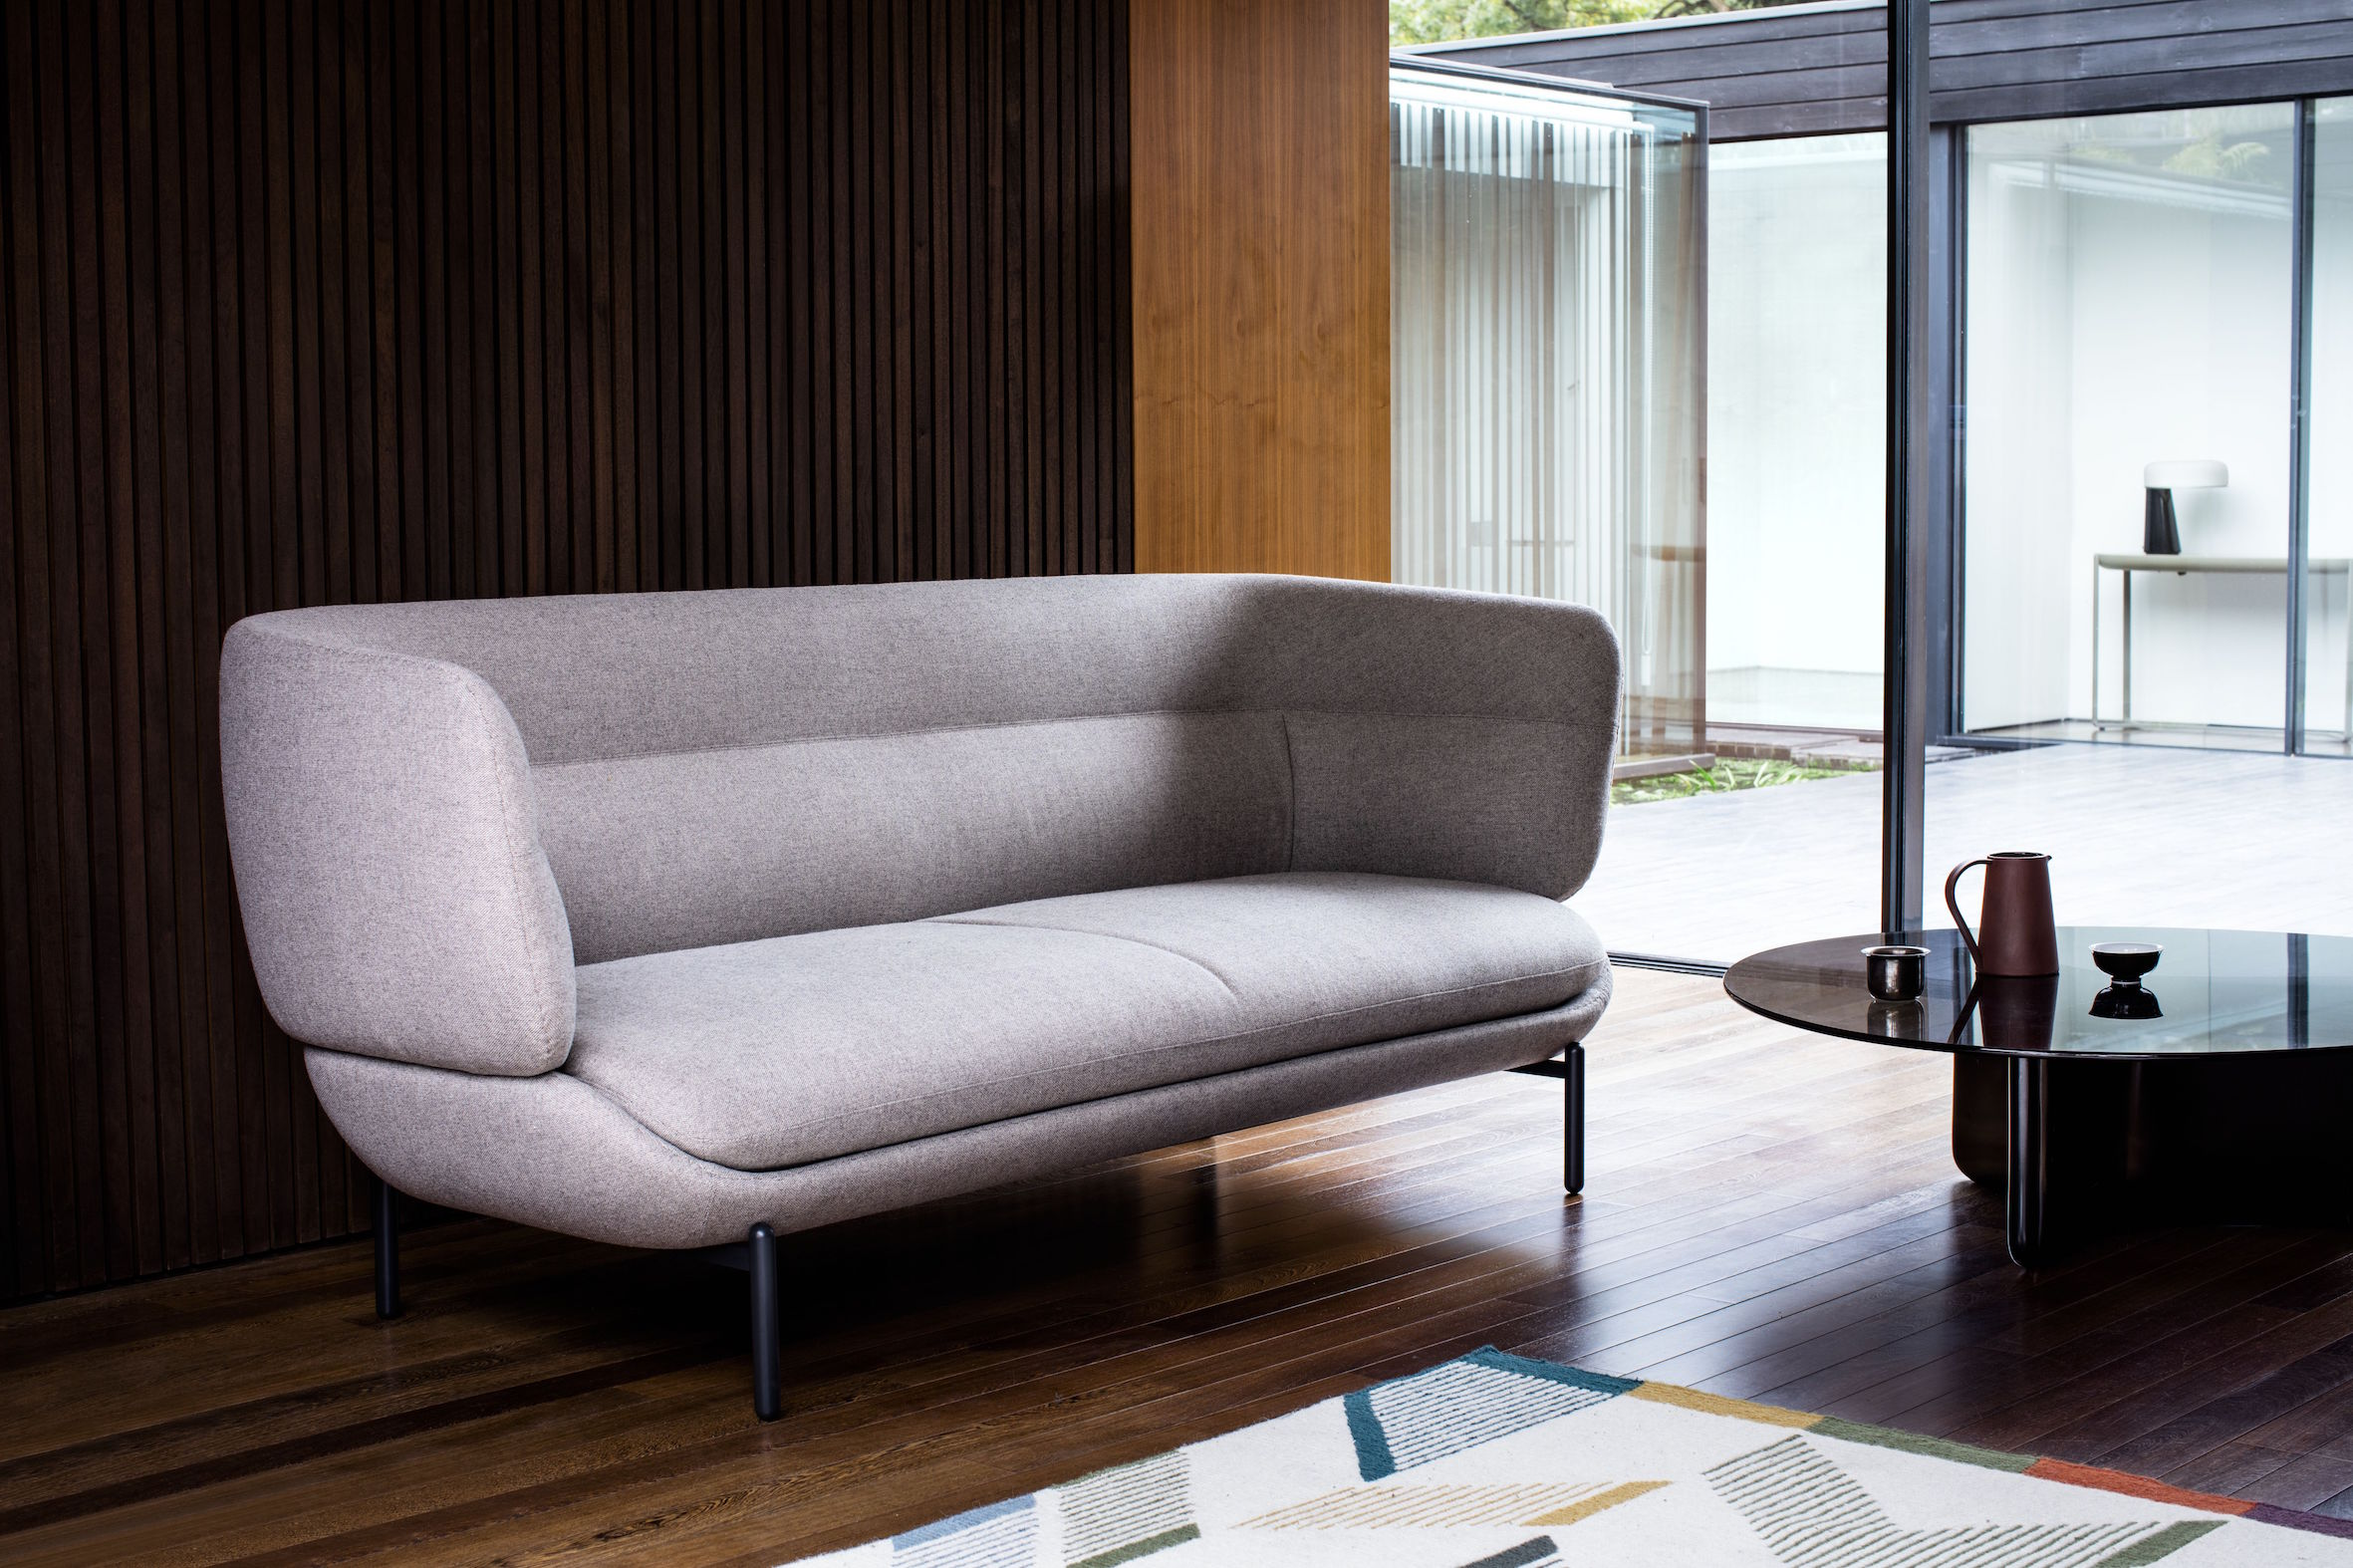 John Lewis Living Room Furniture Doshi Levien Takes To The High Street With New John Lewis Range